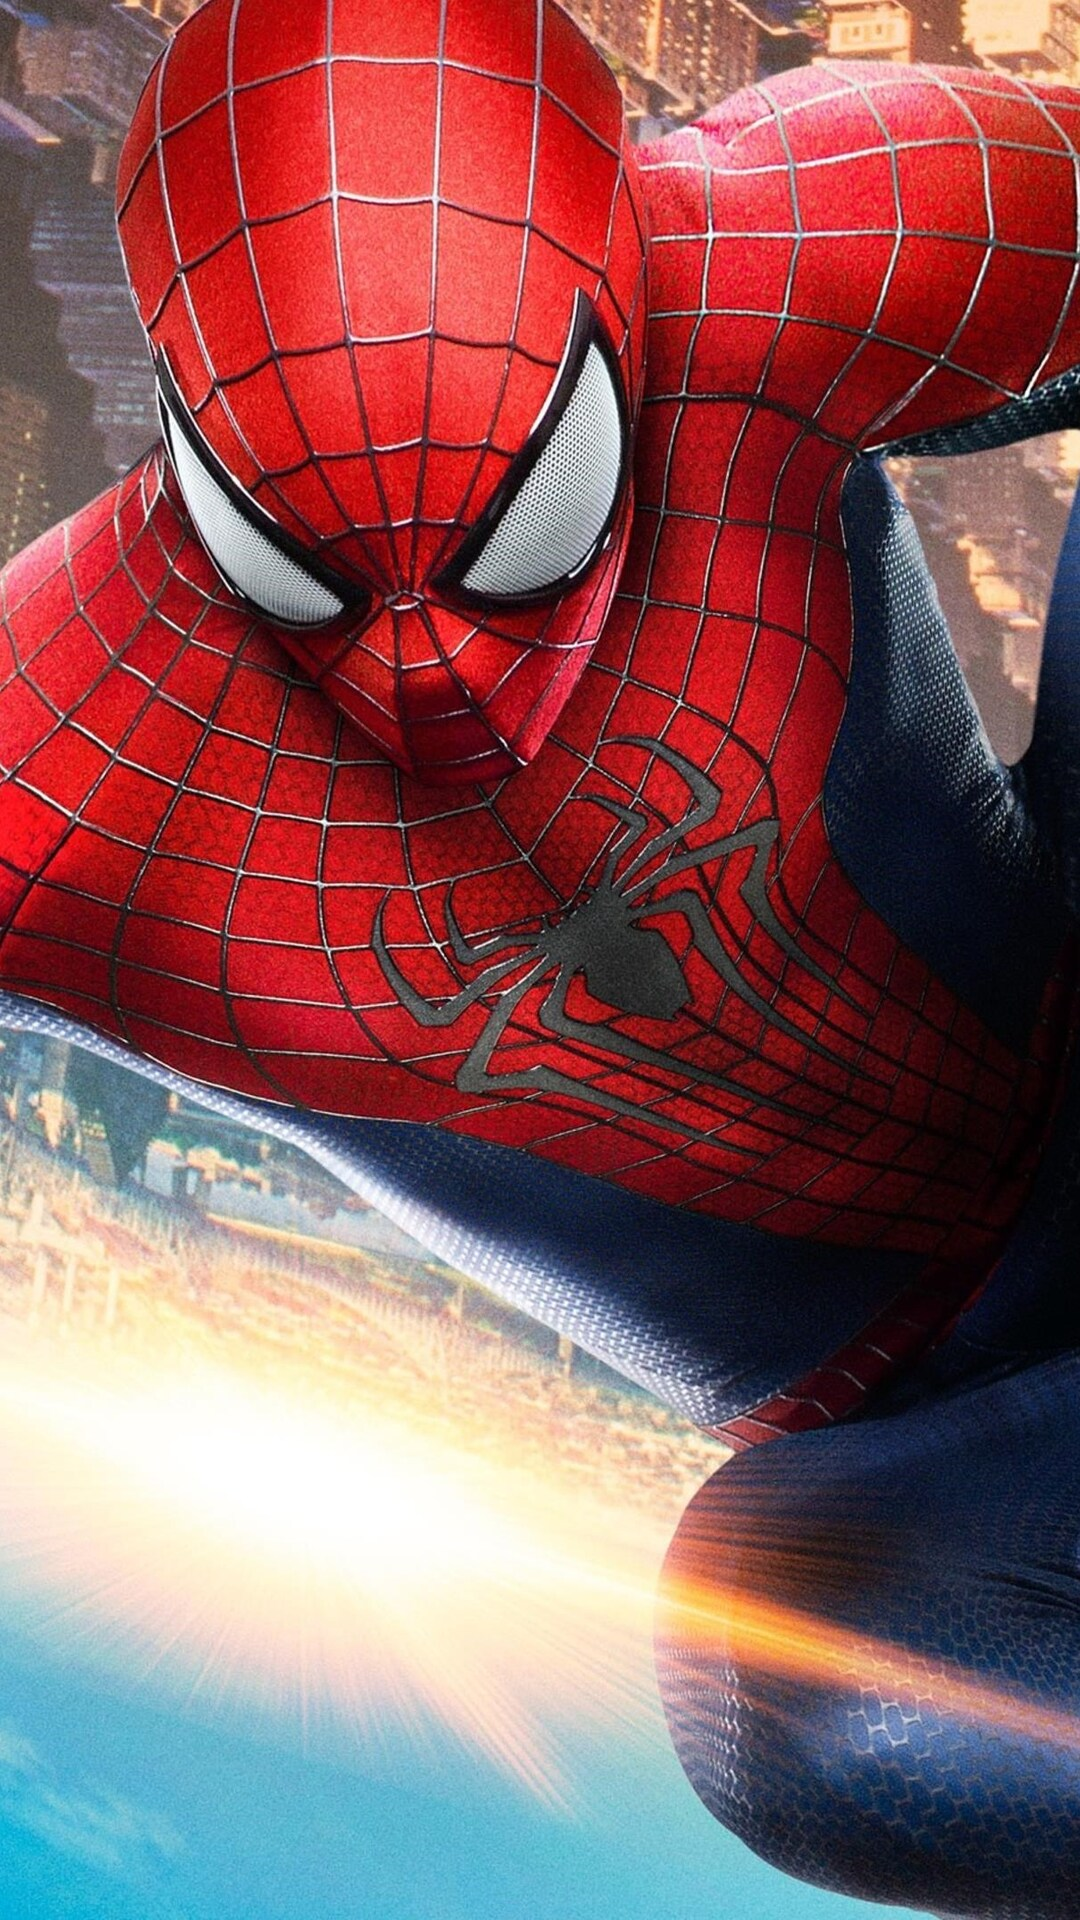 1080x1920 The Amazing Spider Man 2 Iphone 7 6s 6 Plus Pixel Xl One